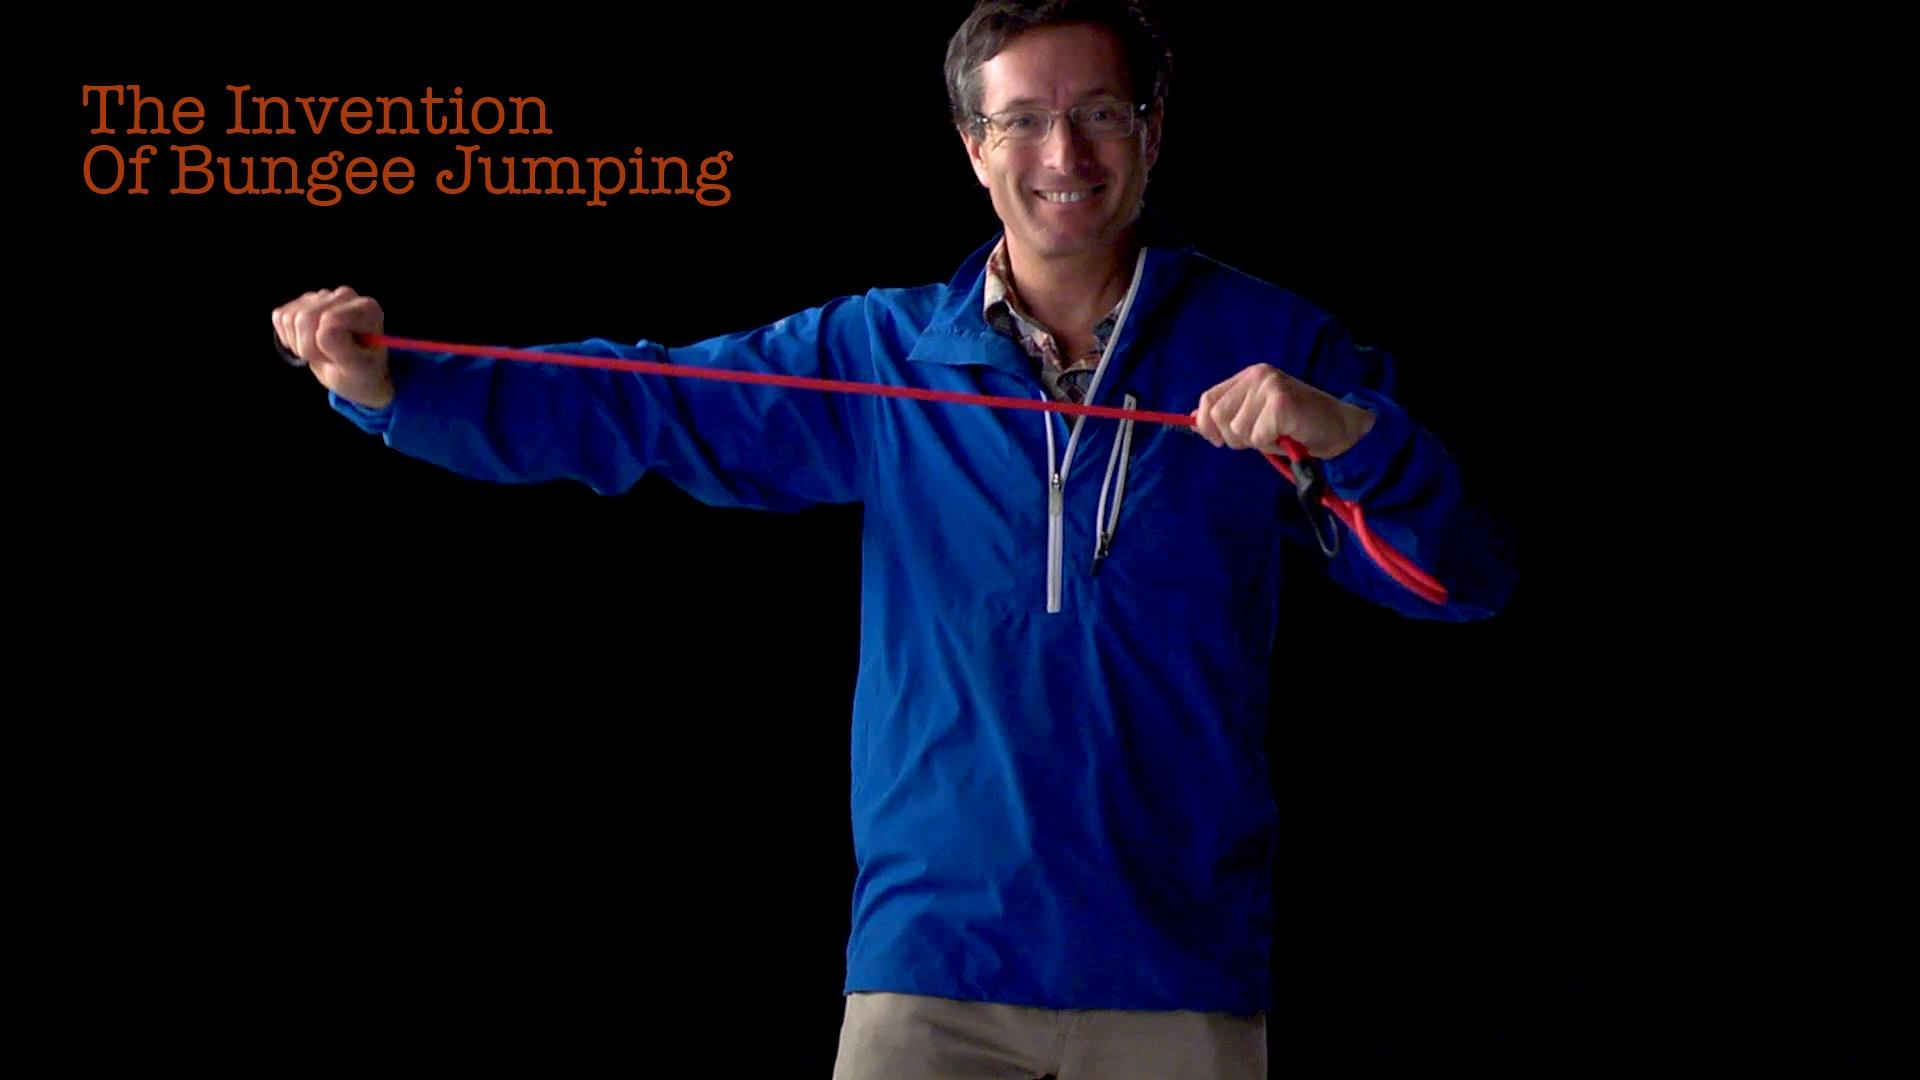 Geoff Tabin: The Invention Of Bungee Jumping image